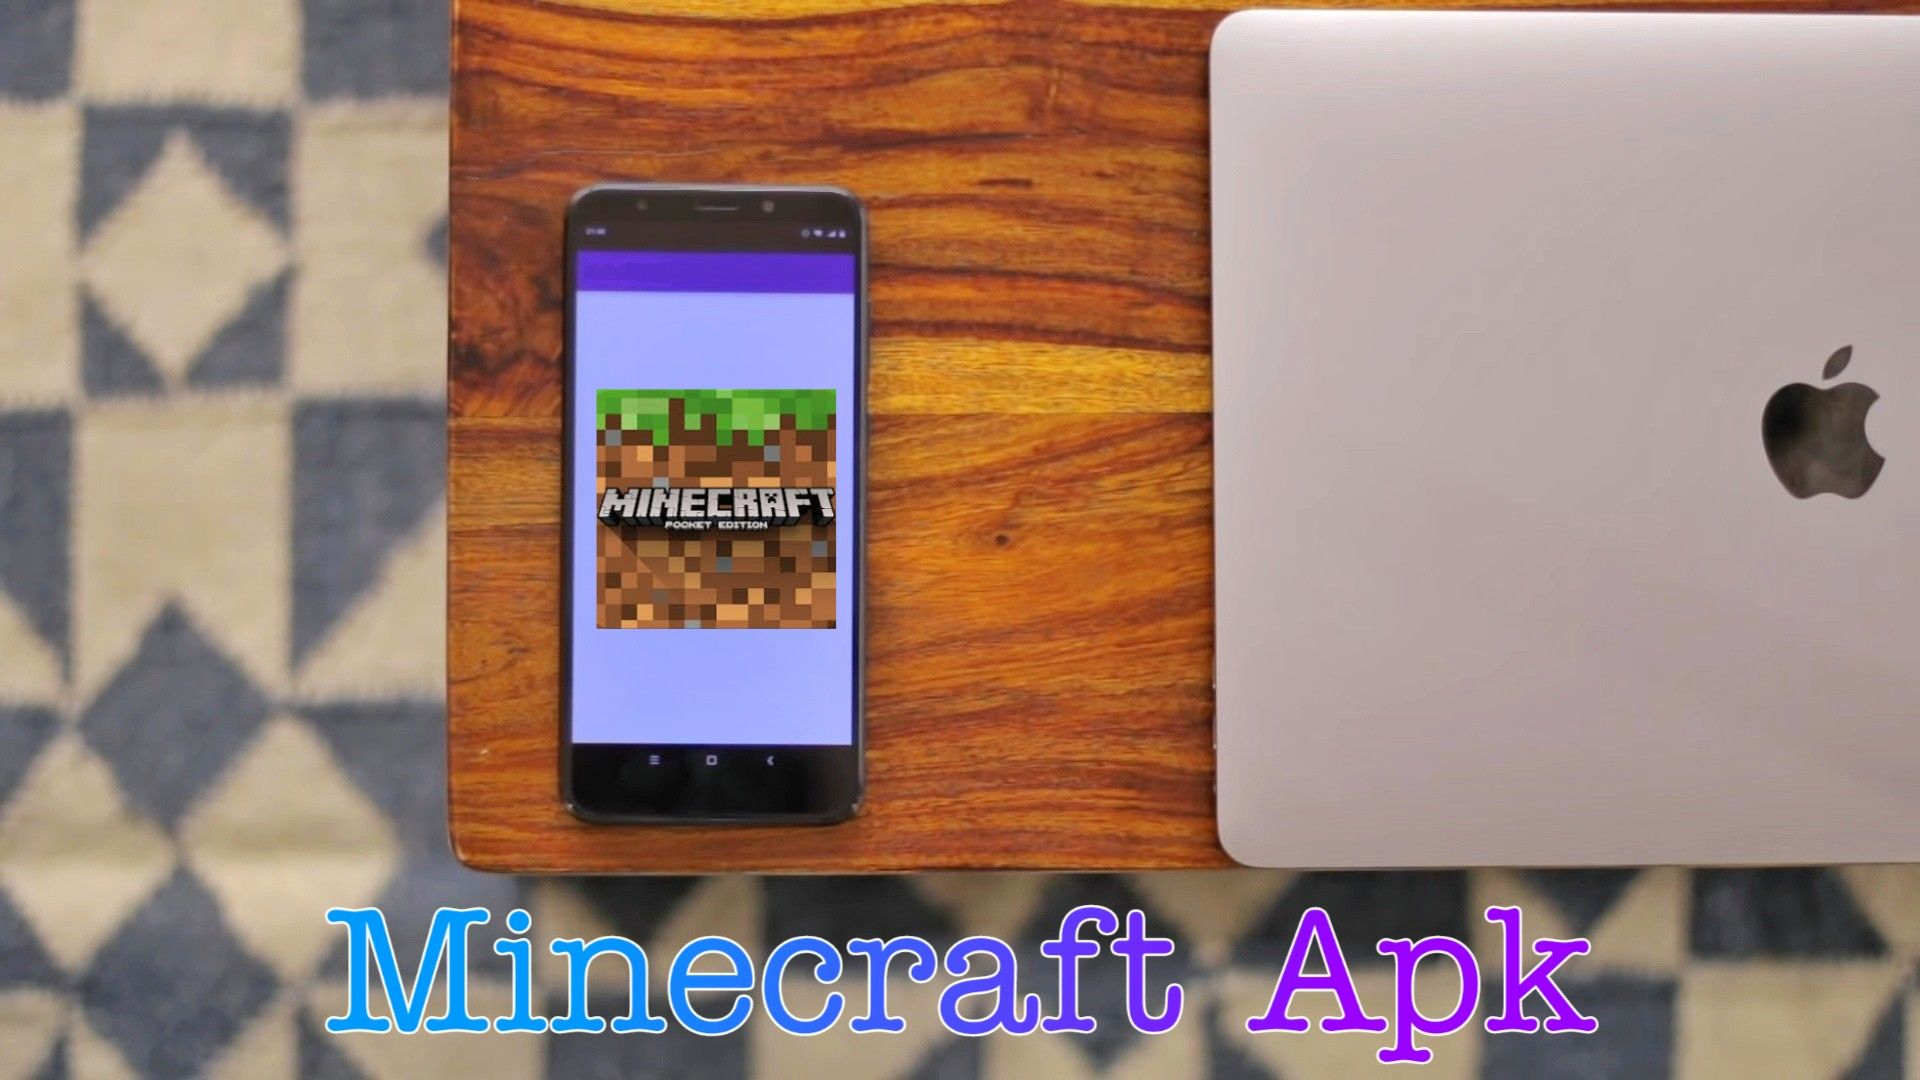 cb83f50f0df2580015fcff33fdec7ec2 - How To Get Minecraft For Free On Any Android Device